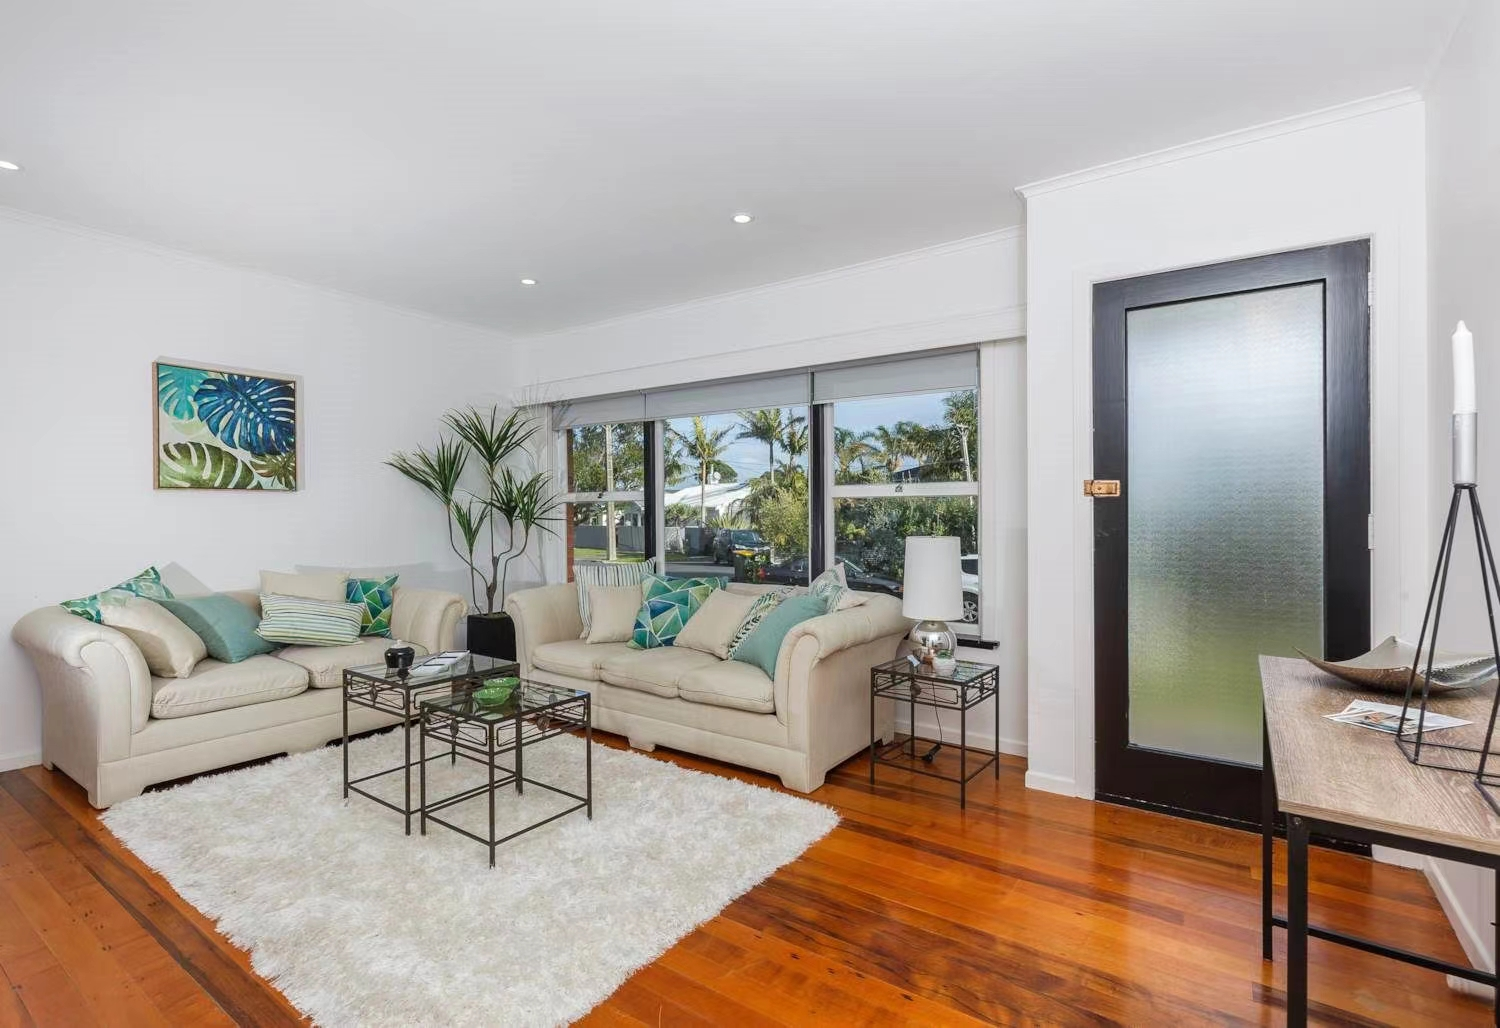 Narrow Neck, 2 bedrooms